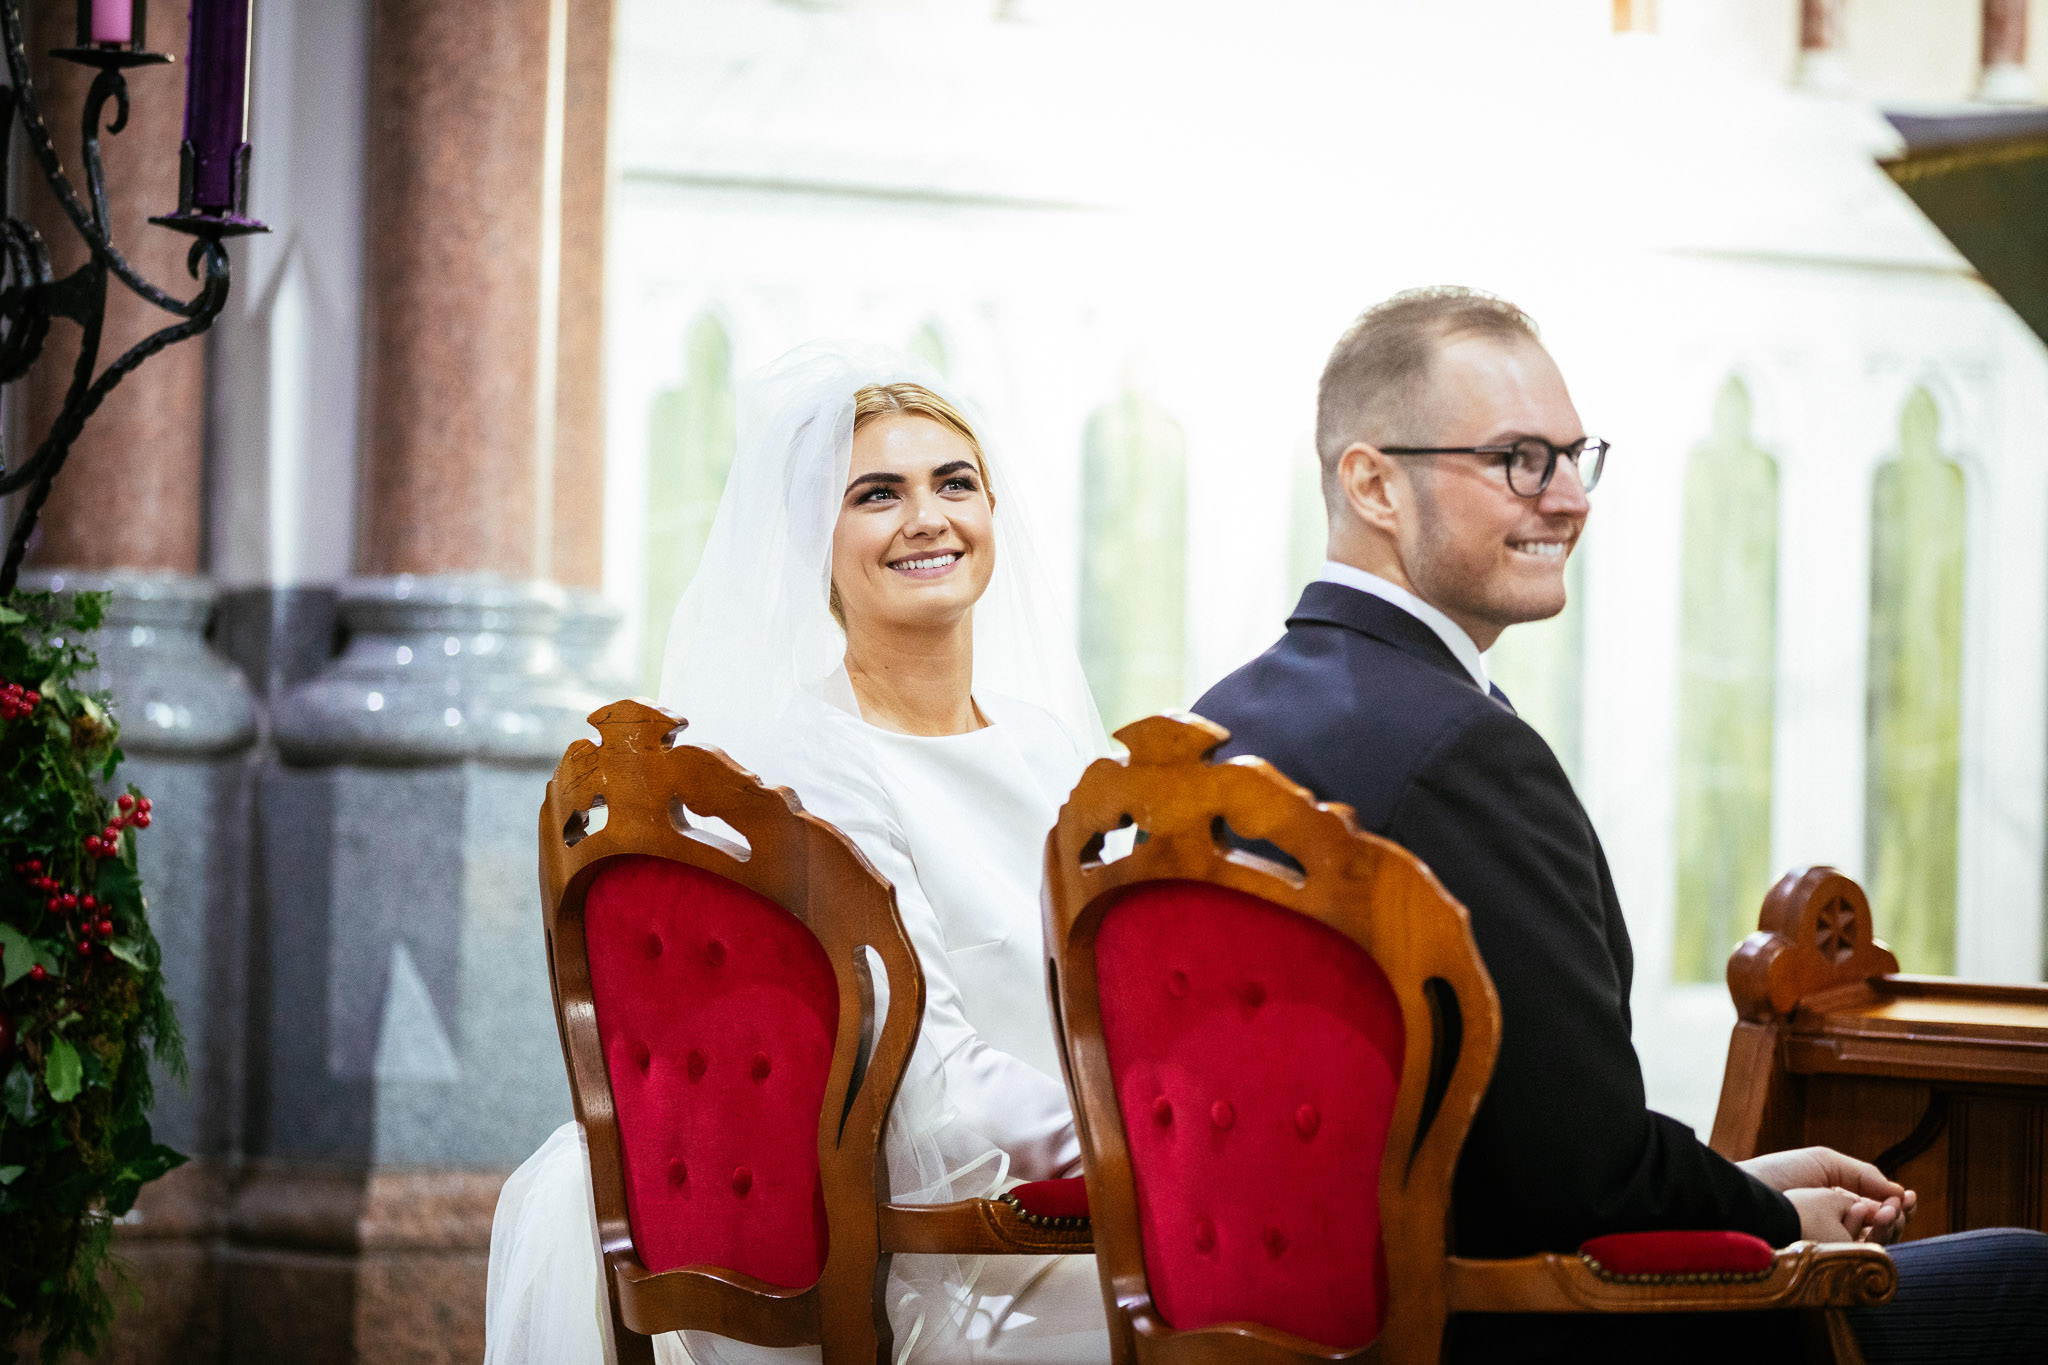 bride smiling during wedding ceremony at St Brigid's Church Oldcastle